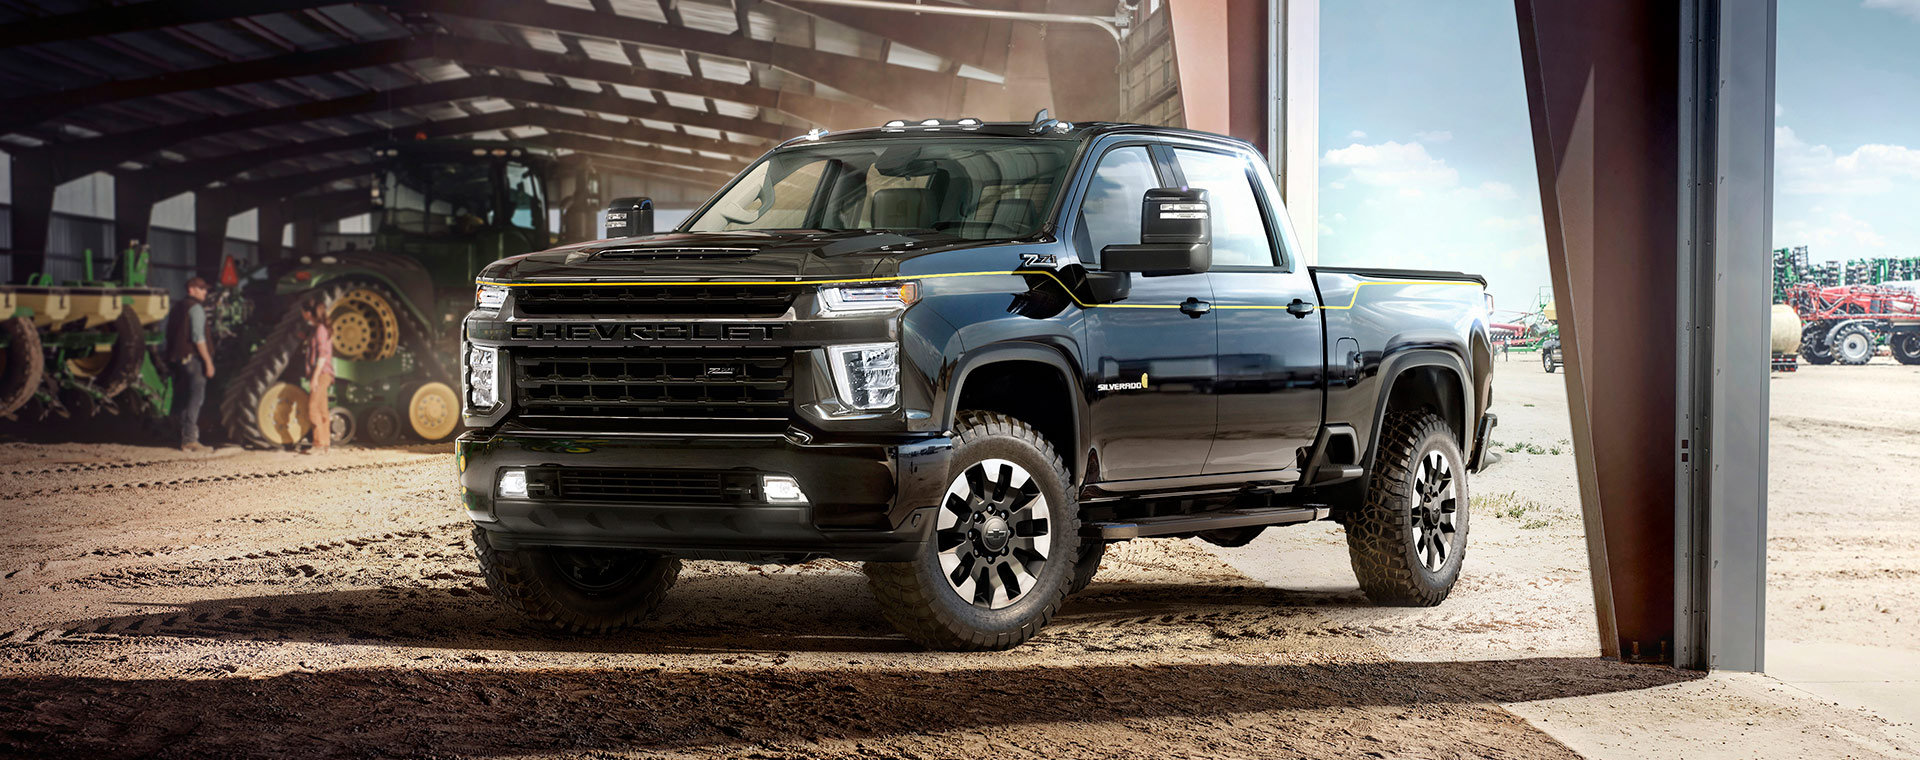 Chevrolet and Carhartt teamed up in a very hard-working truck: meet the 2021 Silverado HD.